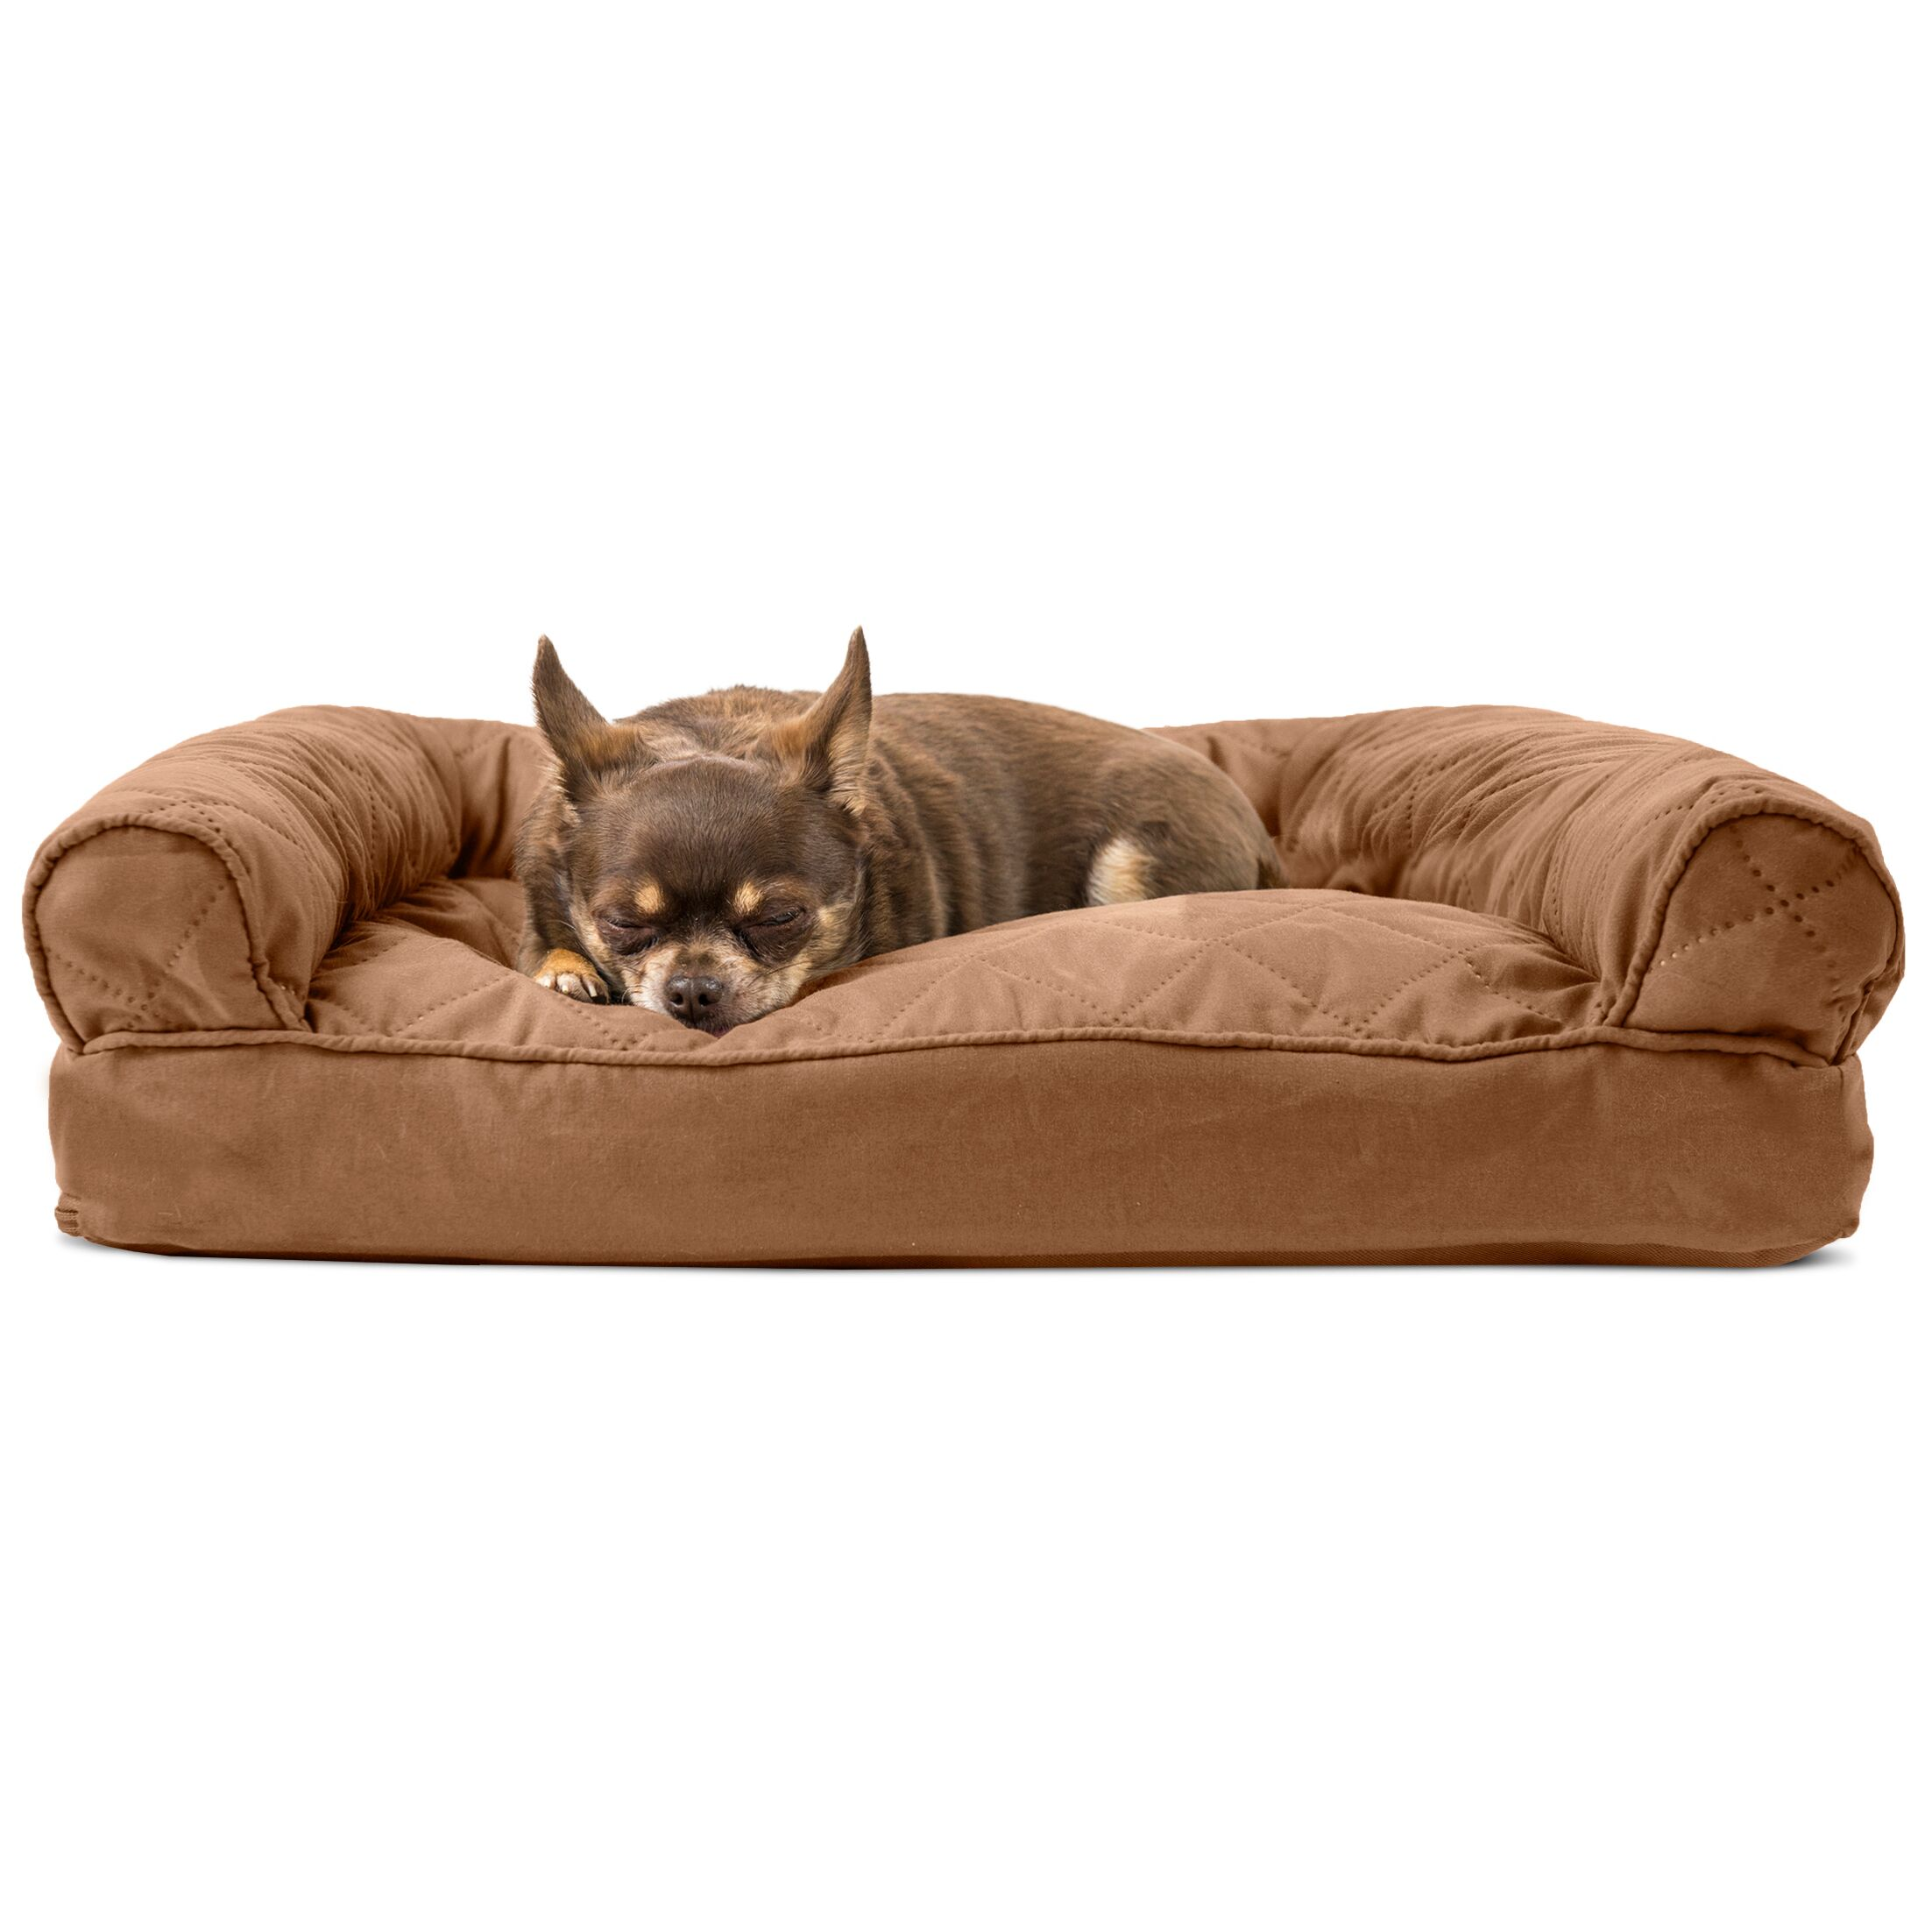 Charmaine Deluxe Dog Bolster Color: Warm Brown, Size: 8